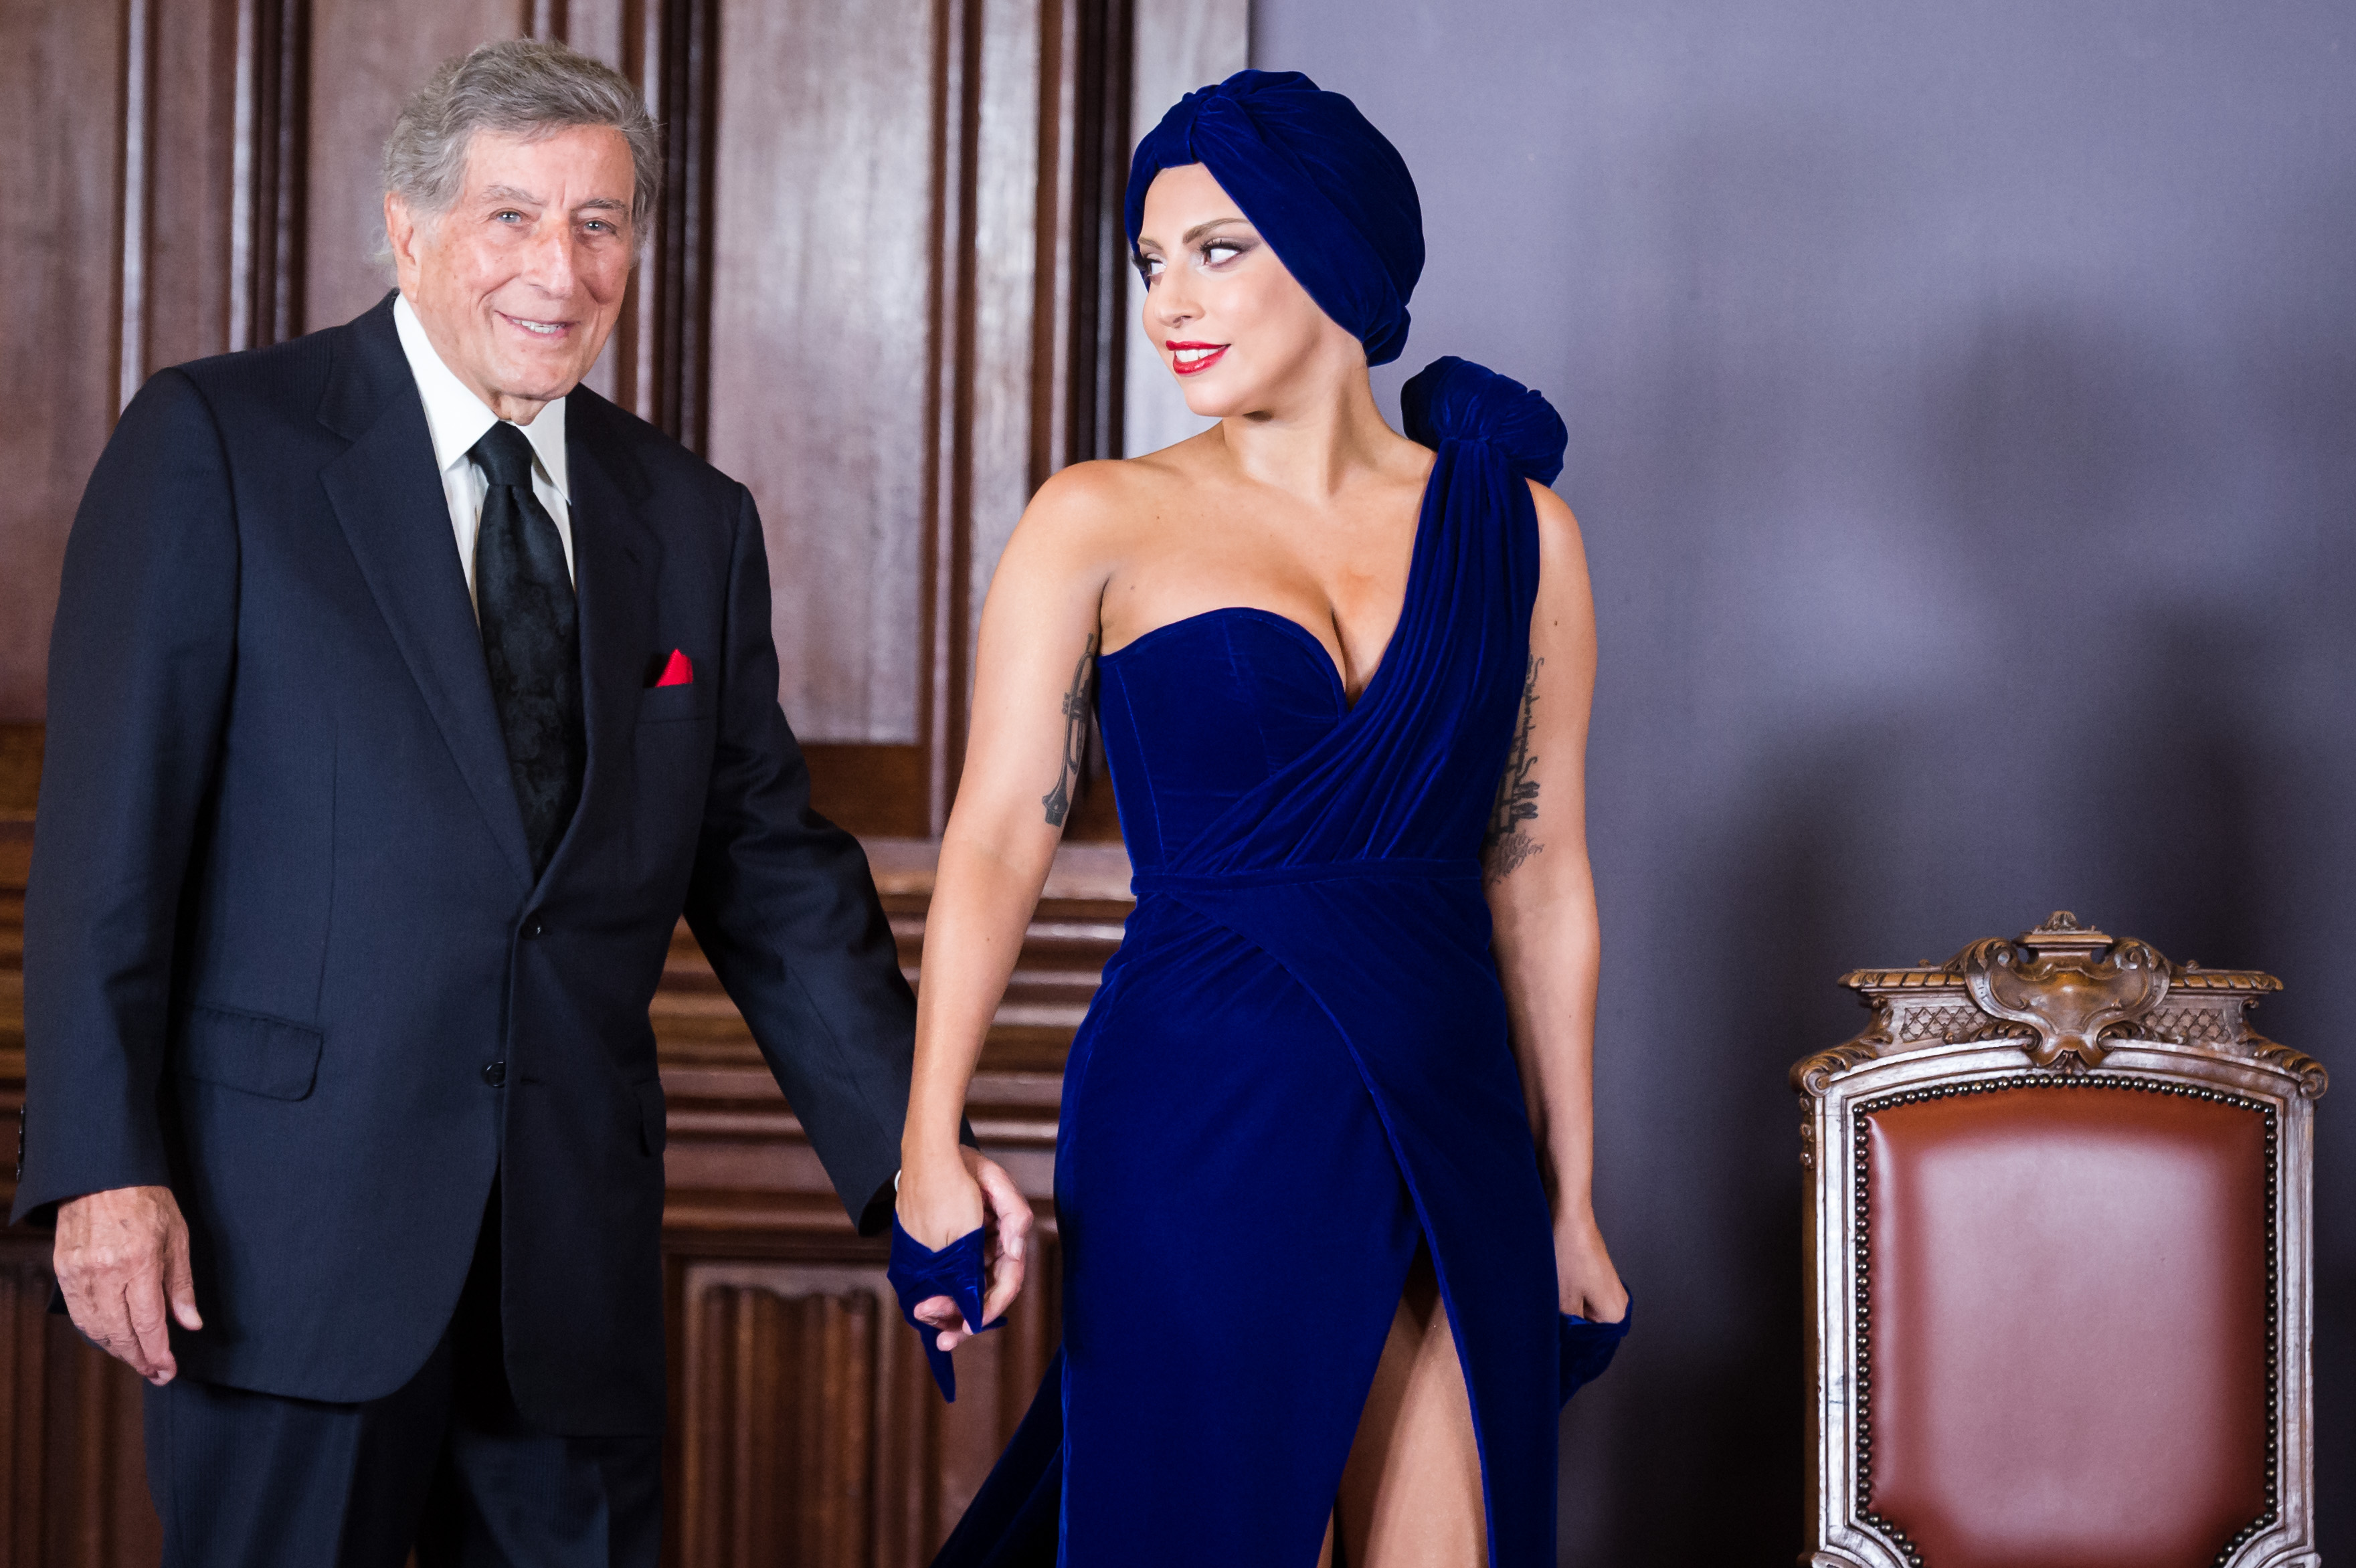 Lady Gaga, Tony Bennett among duets set for Grammy Awards